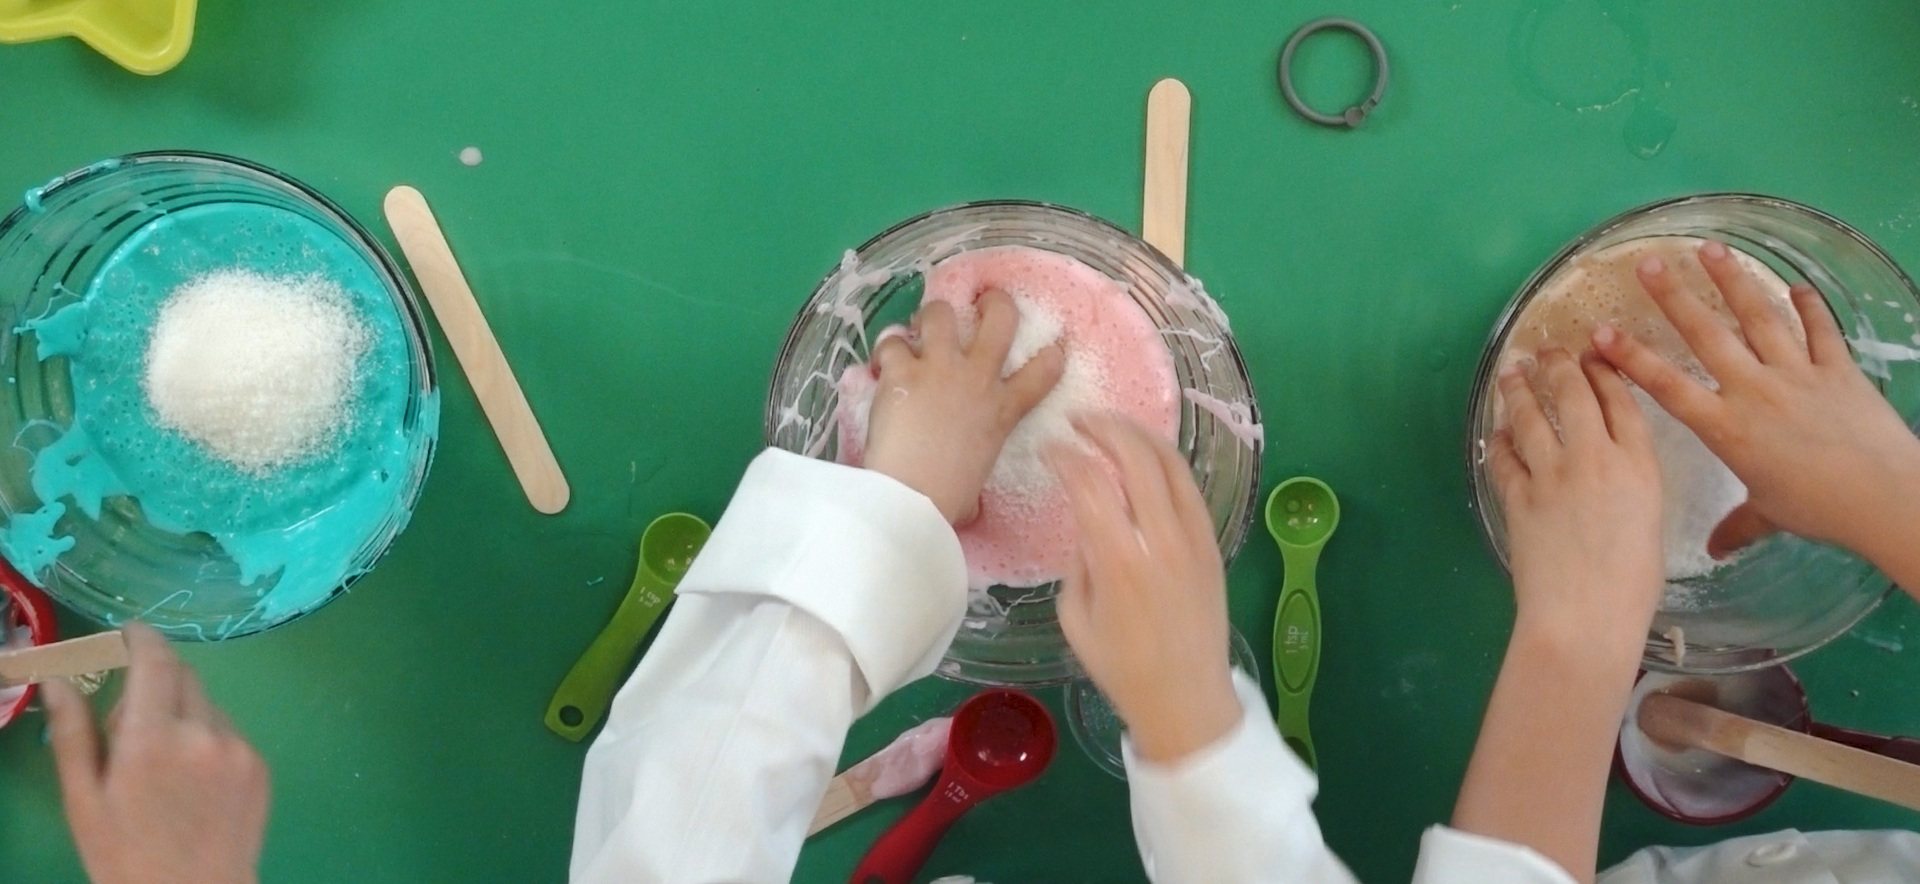 Making slime is a fun activity for young scientists. Download our free slime science activity guides for tips!